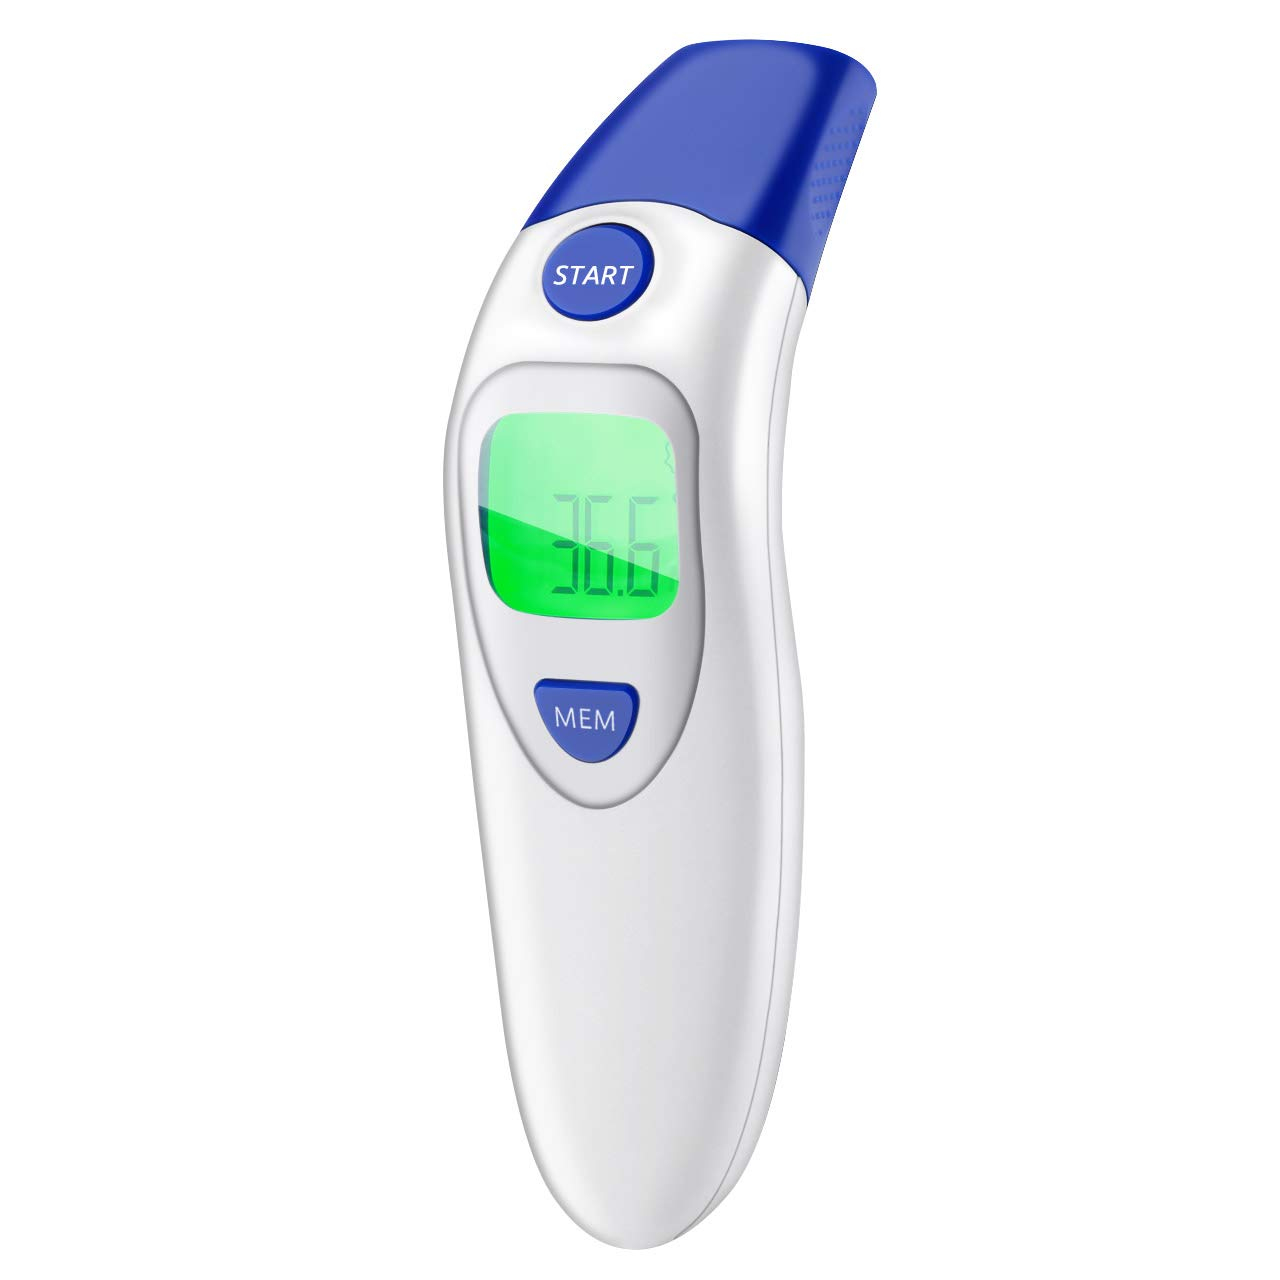 Baby Thermometer 2 in 1Digital Forehead and Ear Thermometer Medical Infrared Thermometer Suitable for Baby Infant Toddler and Adults with Fever Alarm and Color Indicator